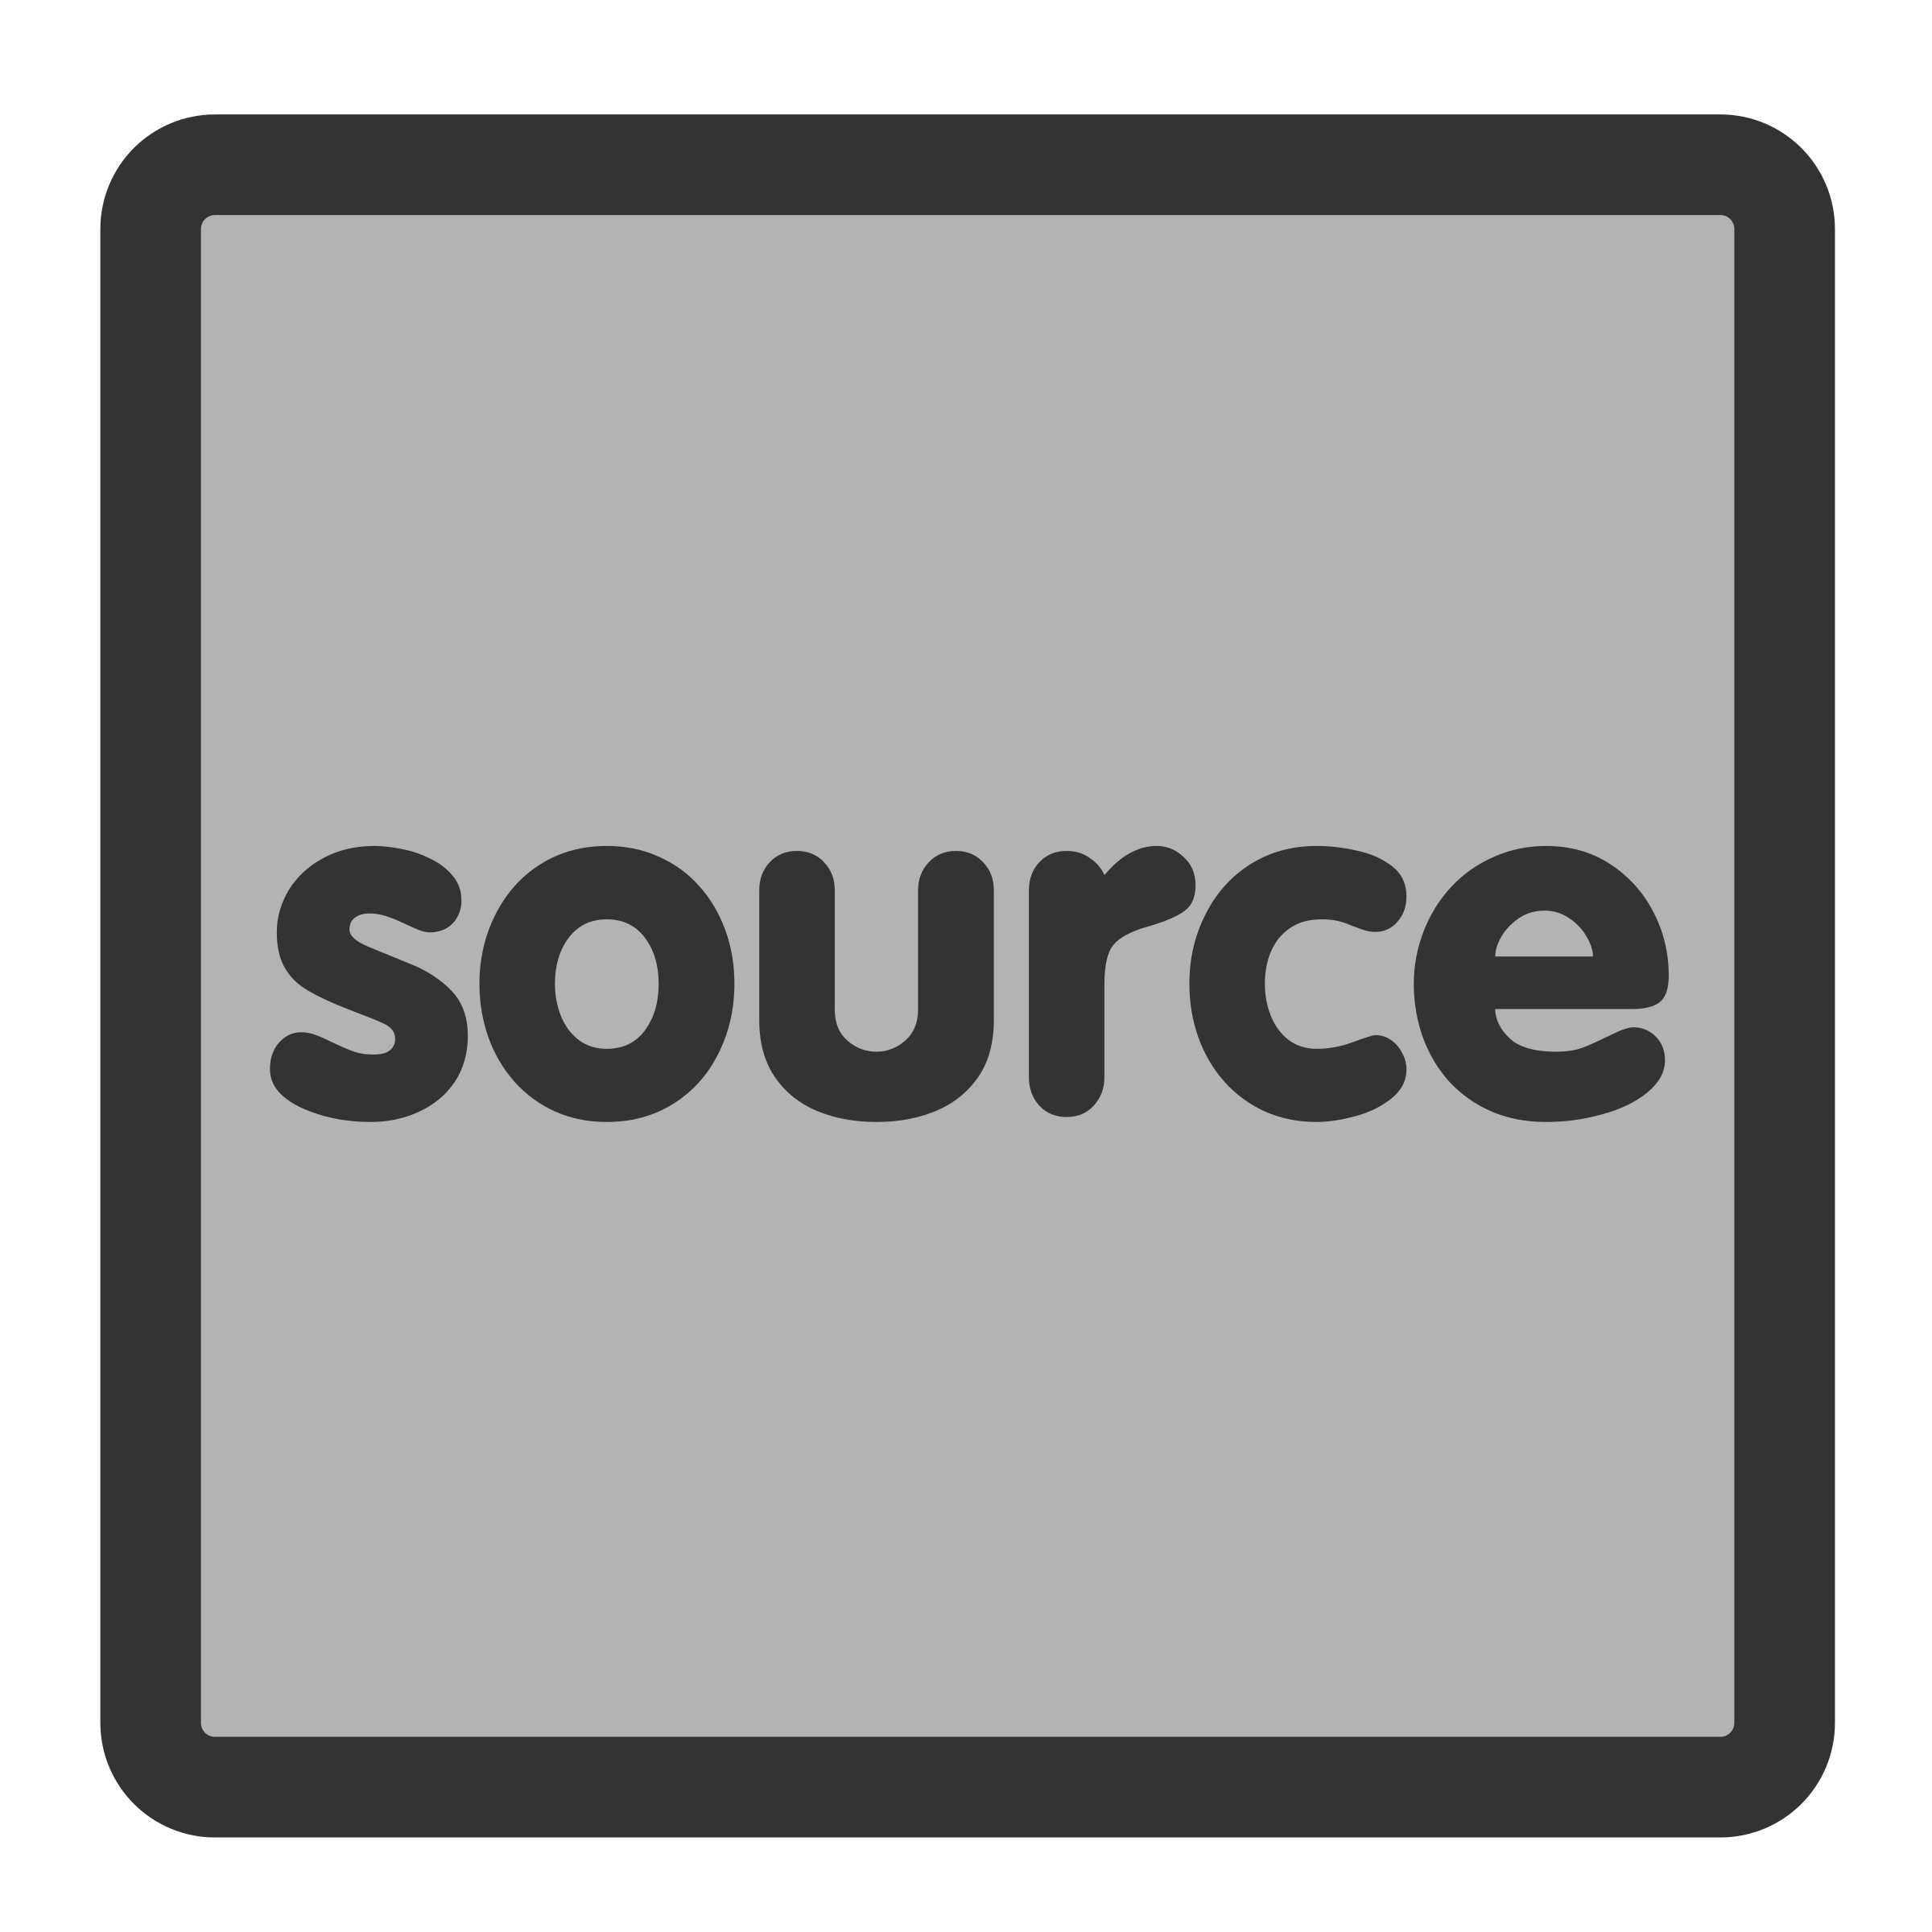 ftsource by dannya